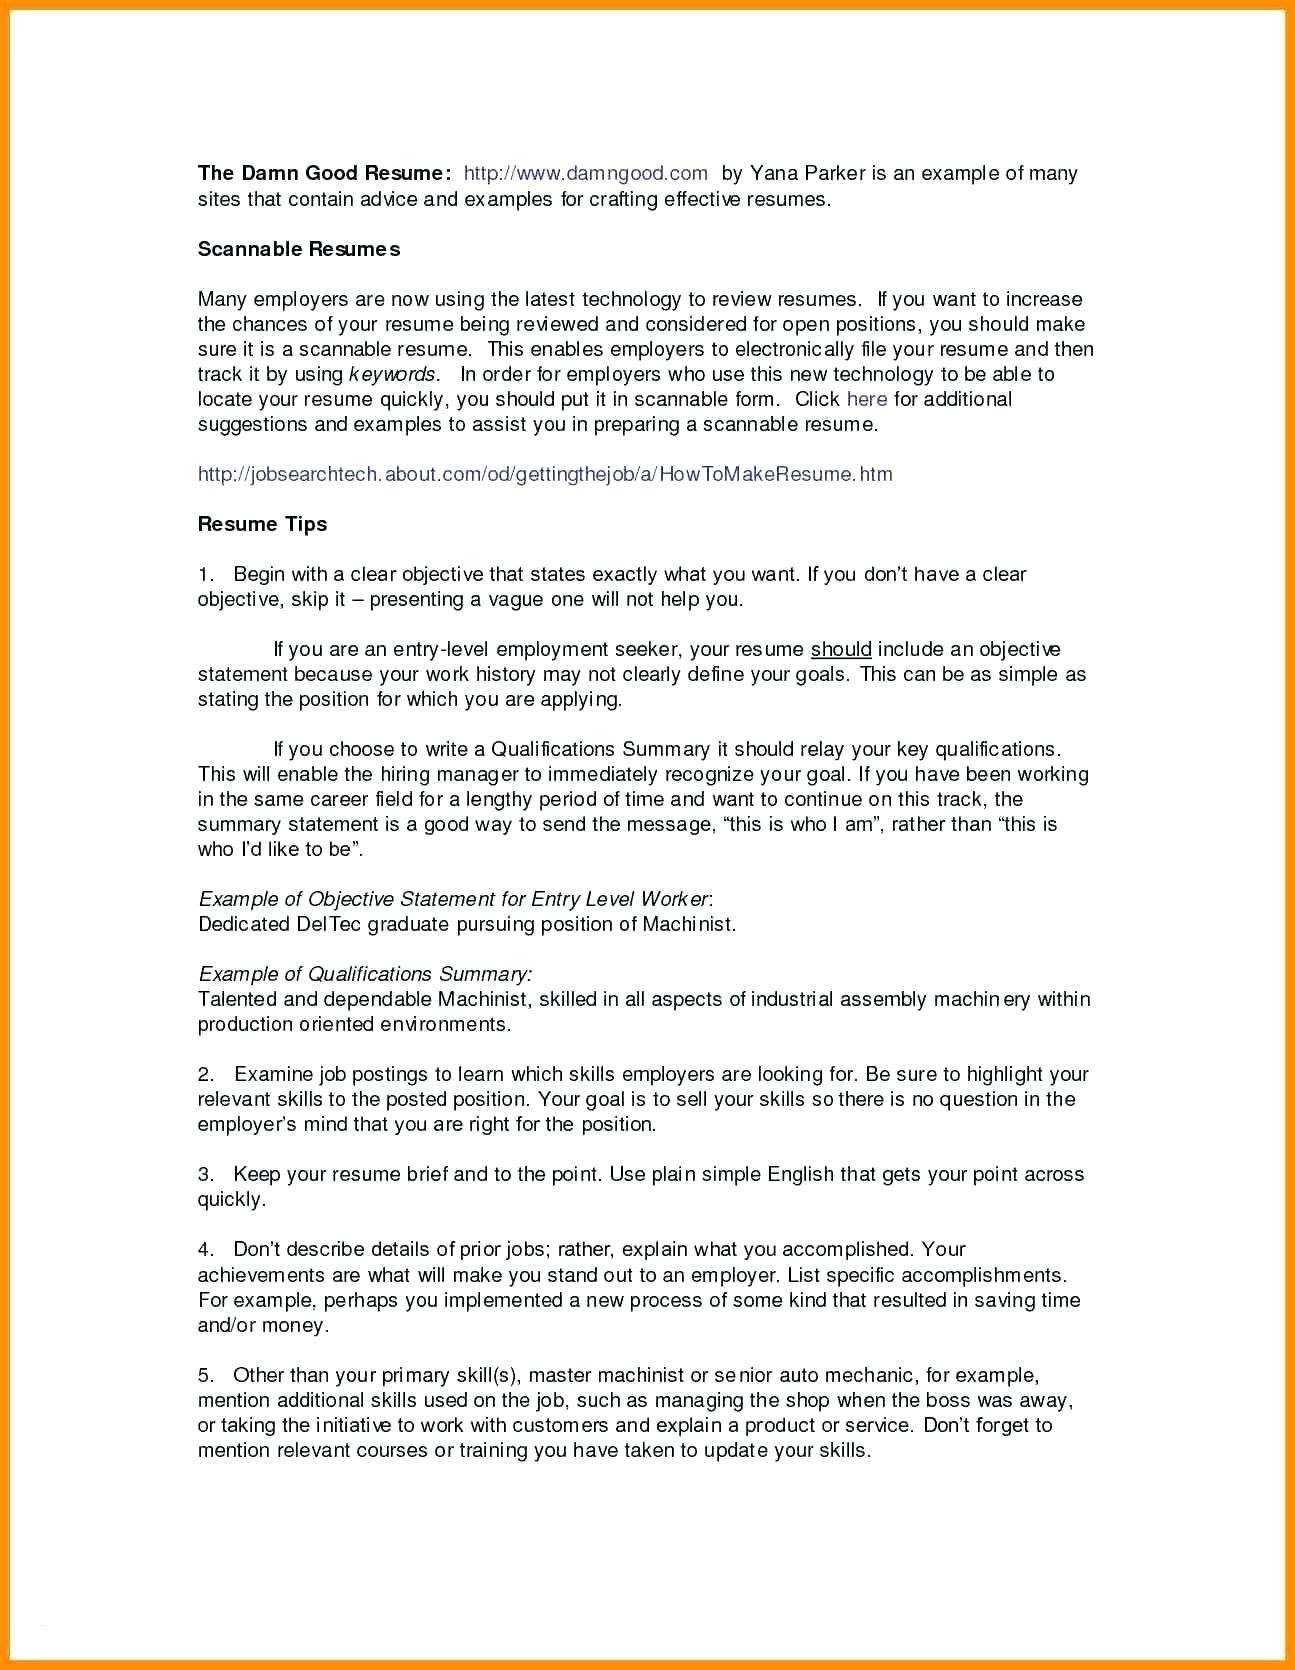 Athletic Resume Template - Resume for Server Fresh athletic Resume Template Elegant Server